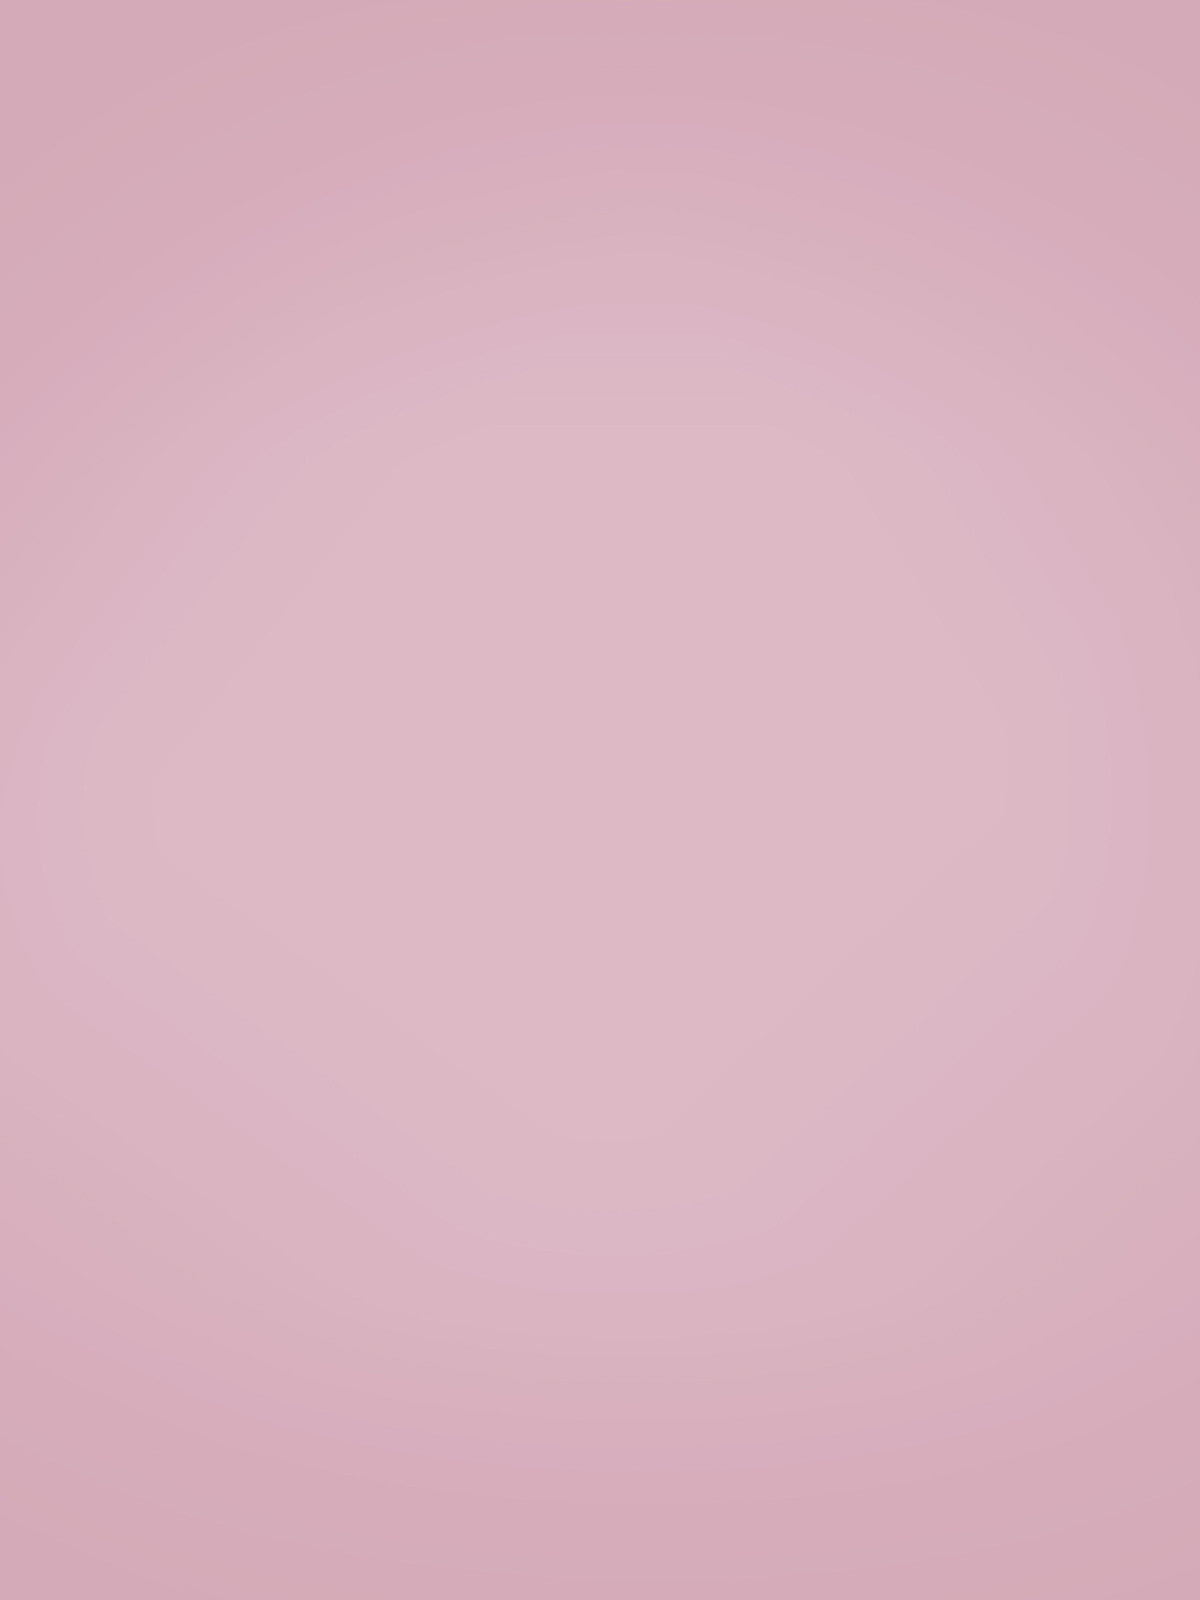 Dusty Rose Solid Photo Backdrop / 9106